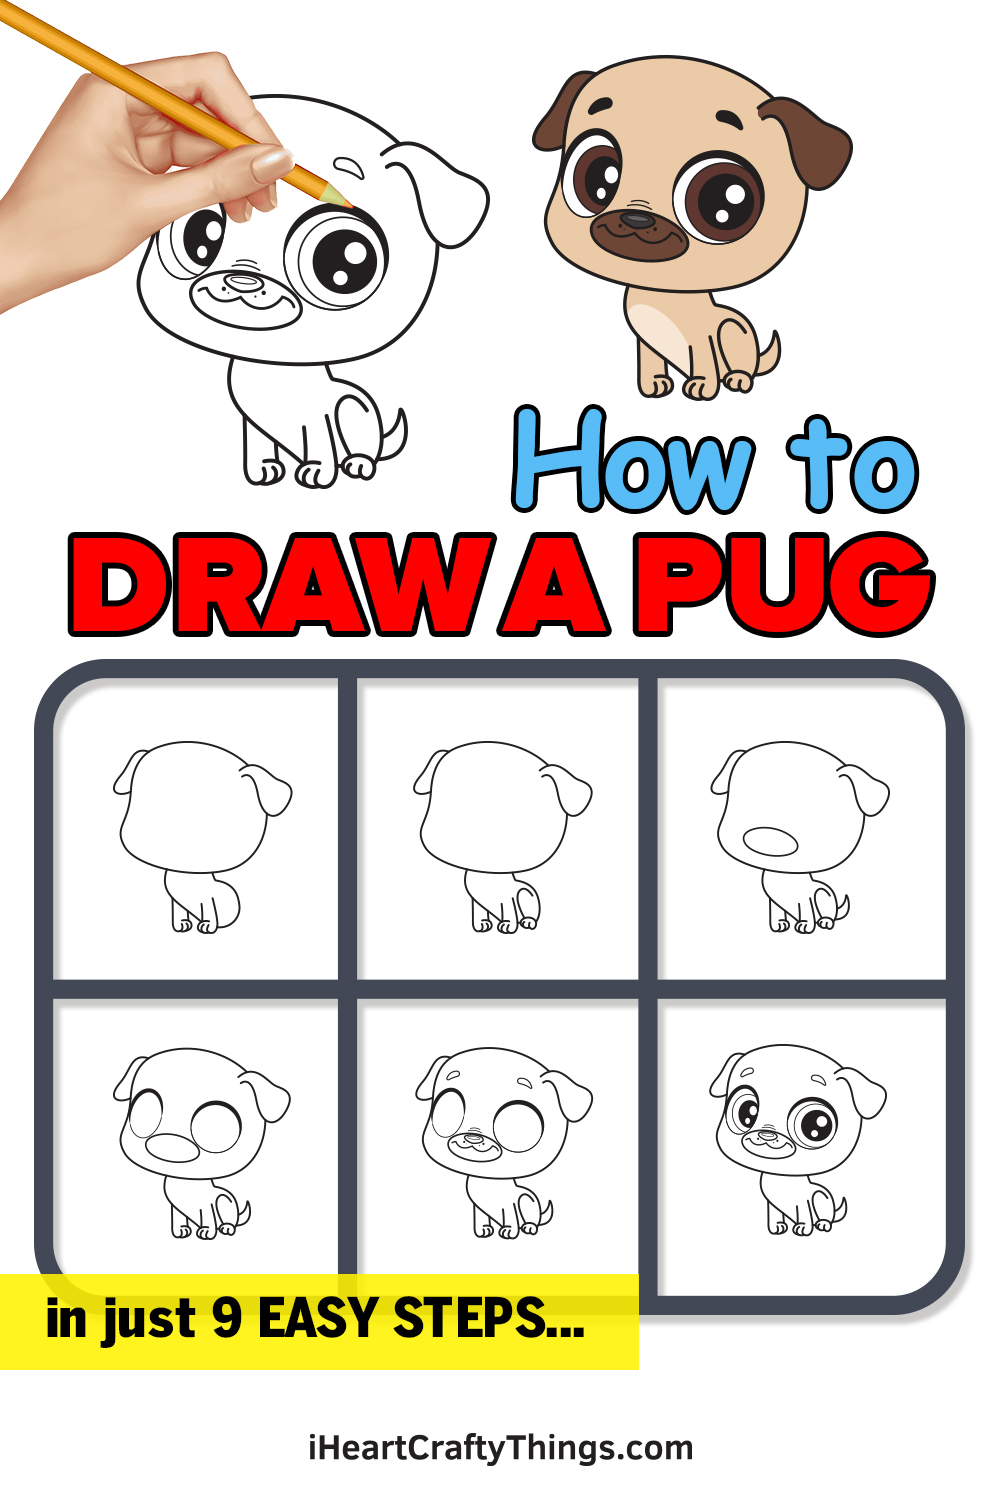 how to draw a pug in 9 easy steps